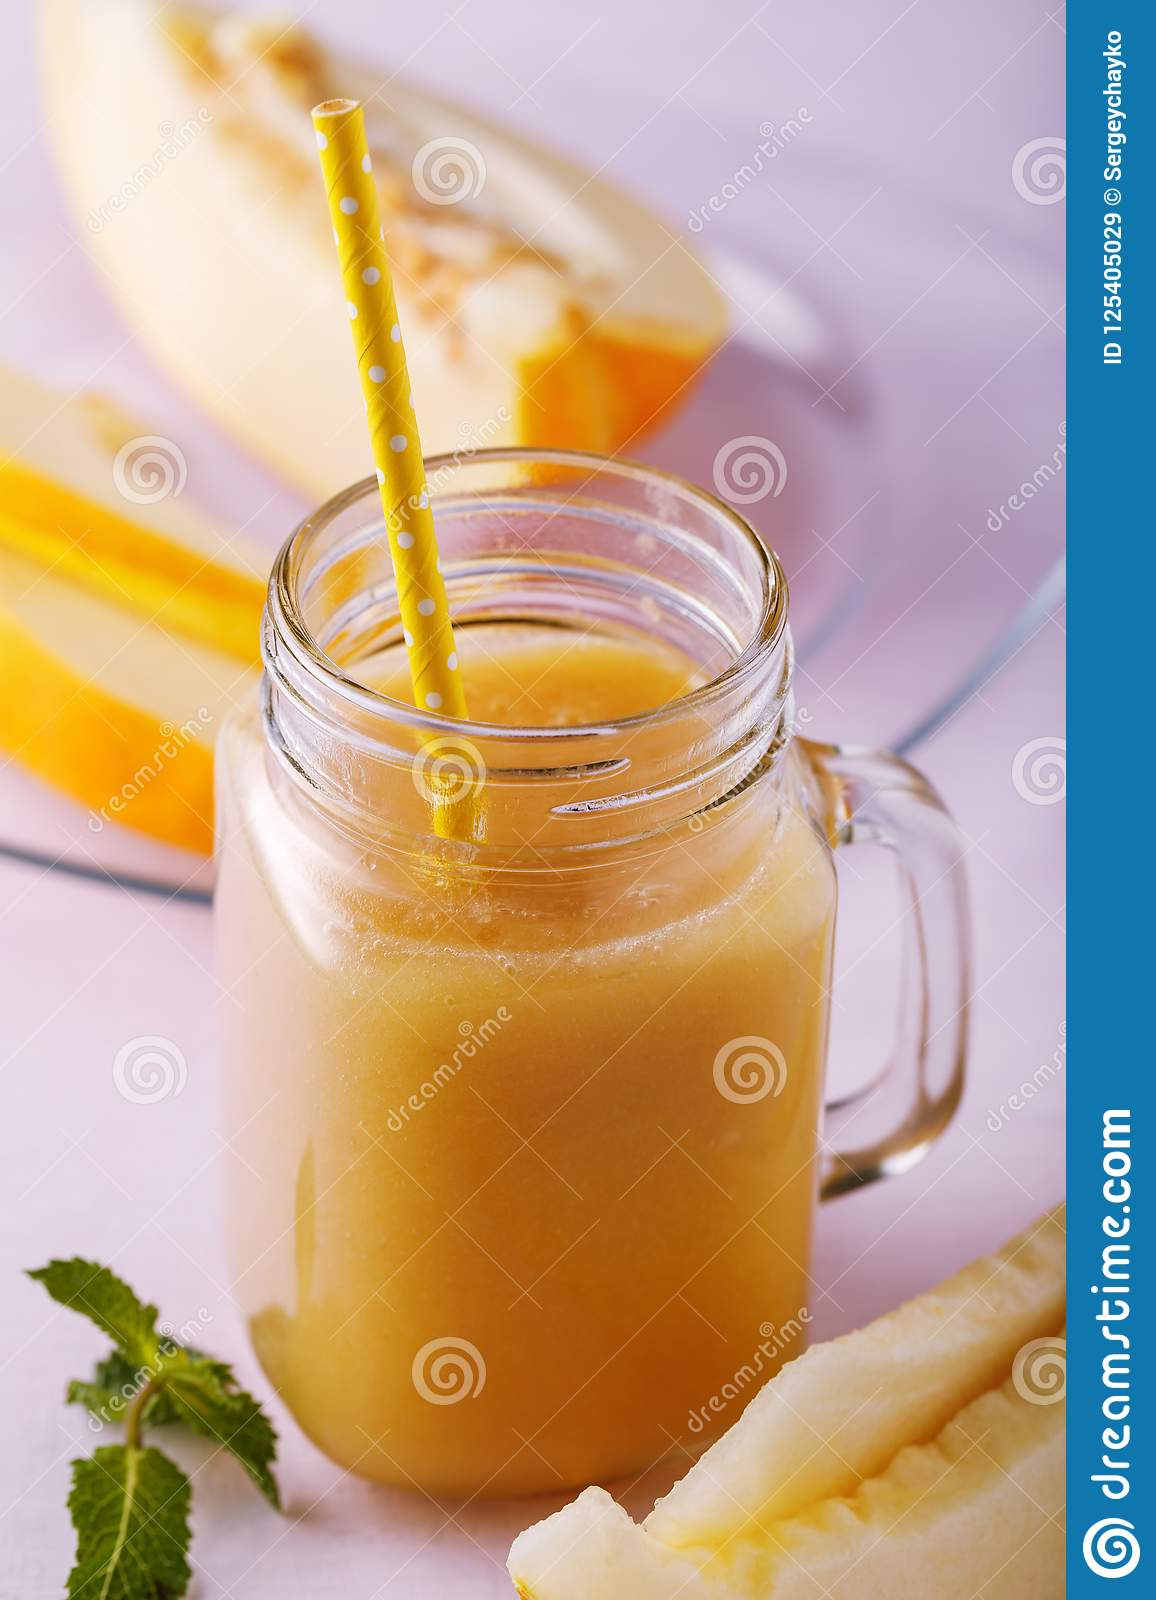 Glass jar of smoothies from pieces of melon on a wooden table